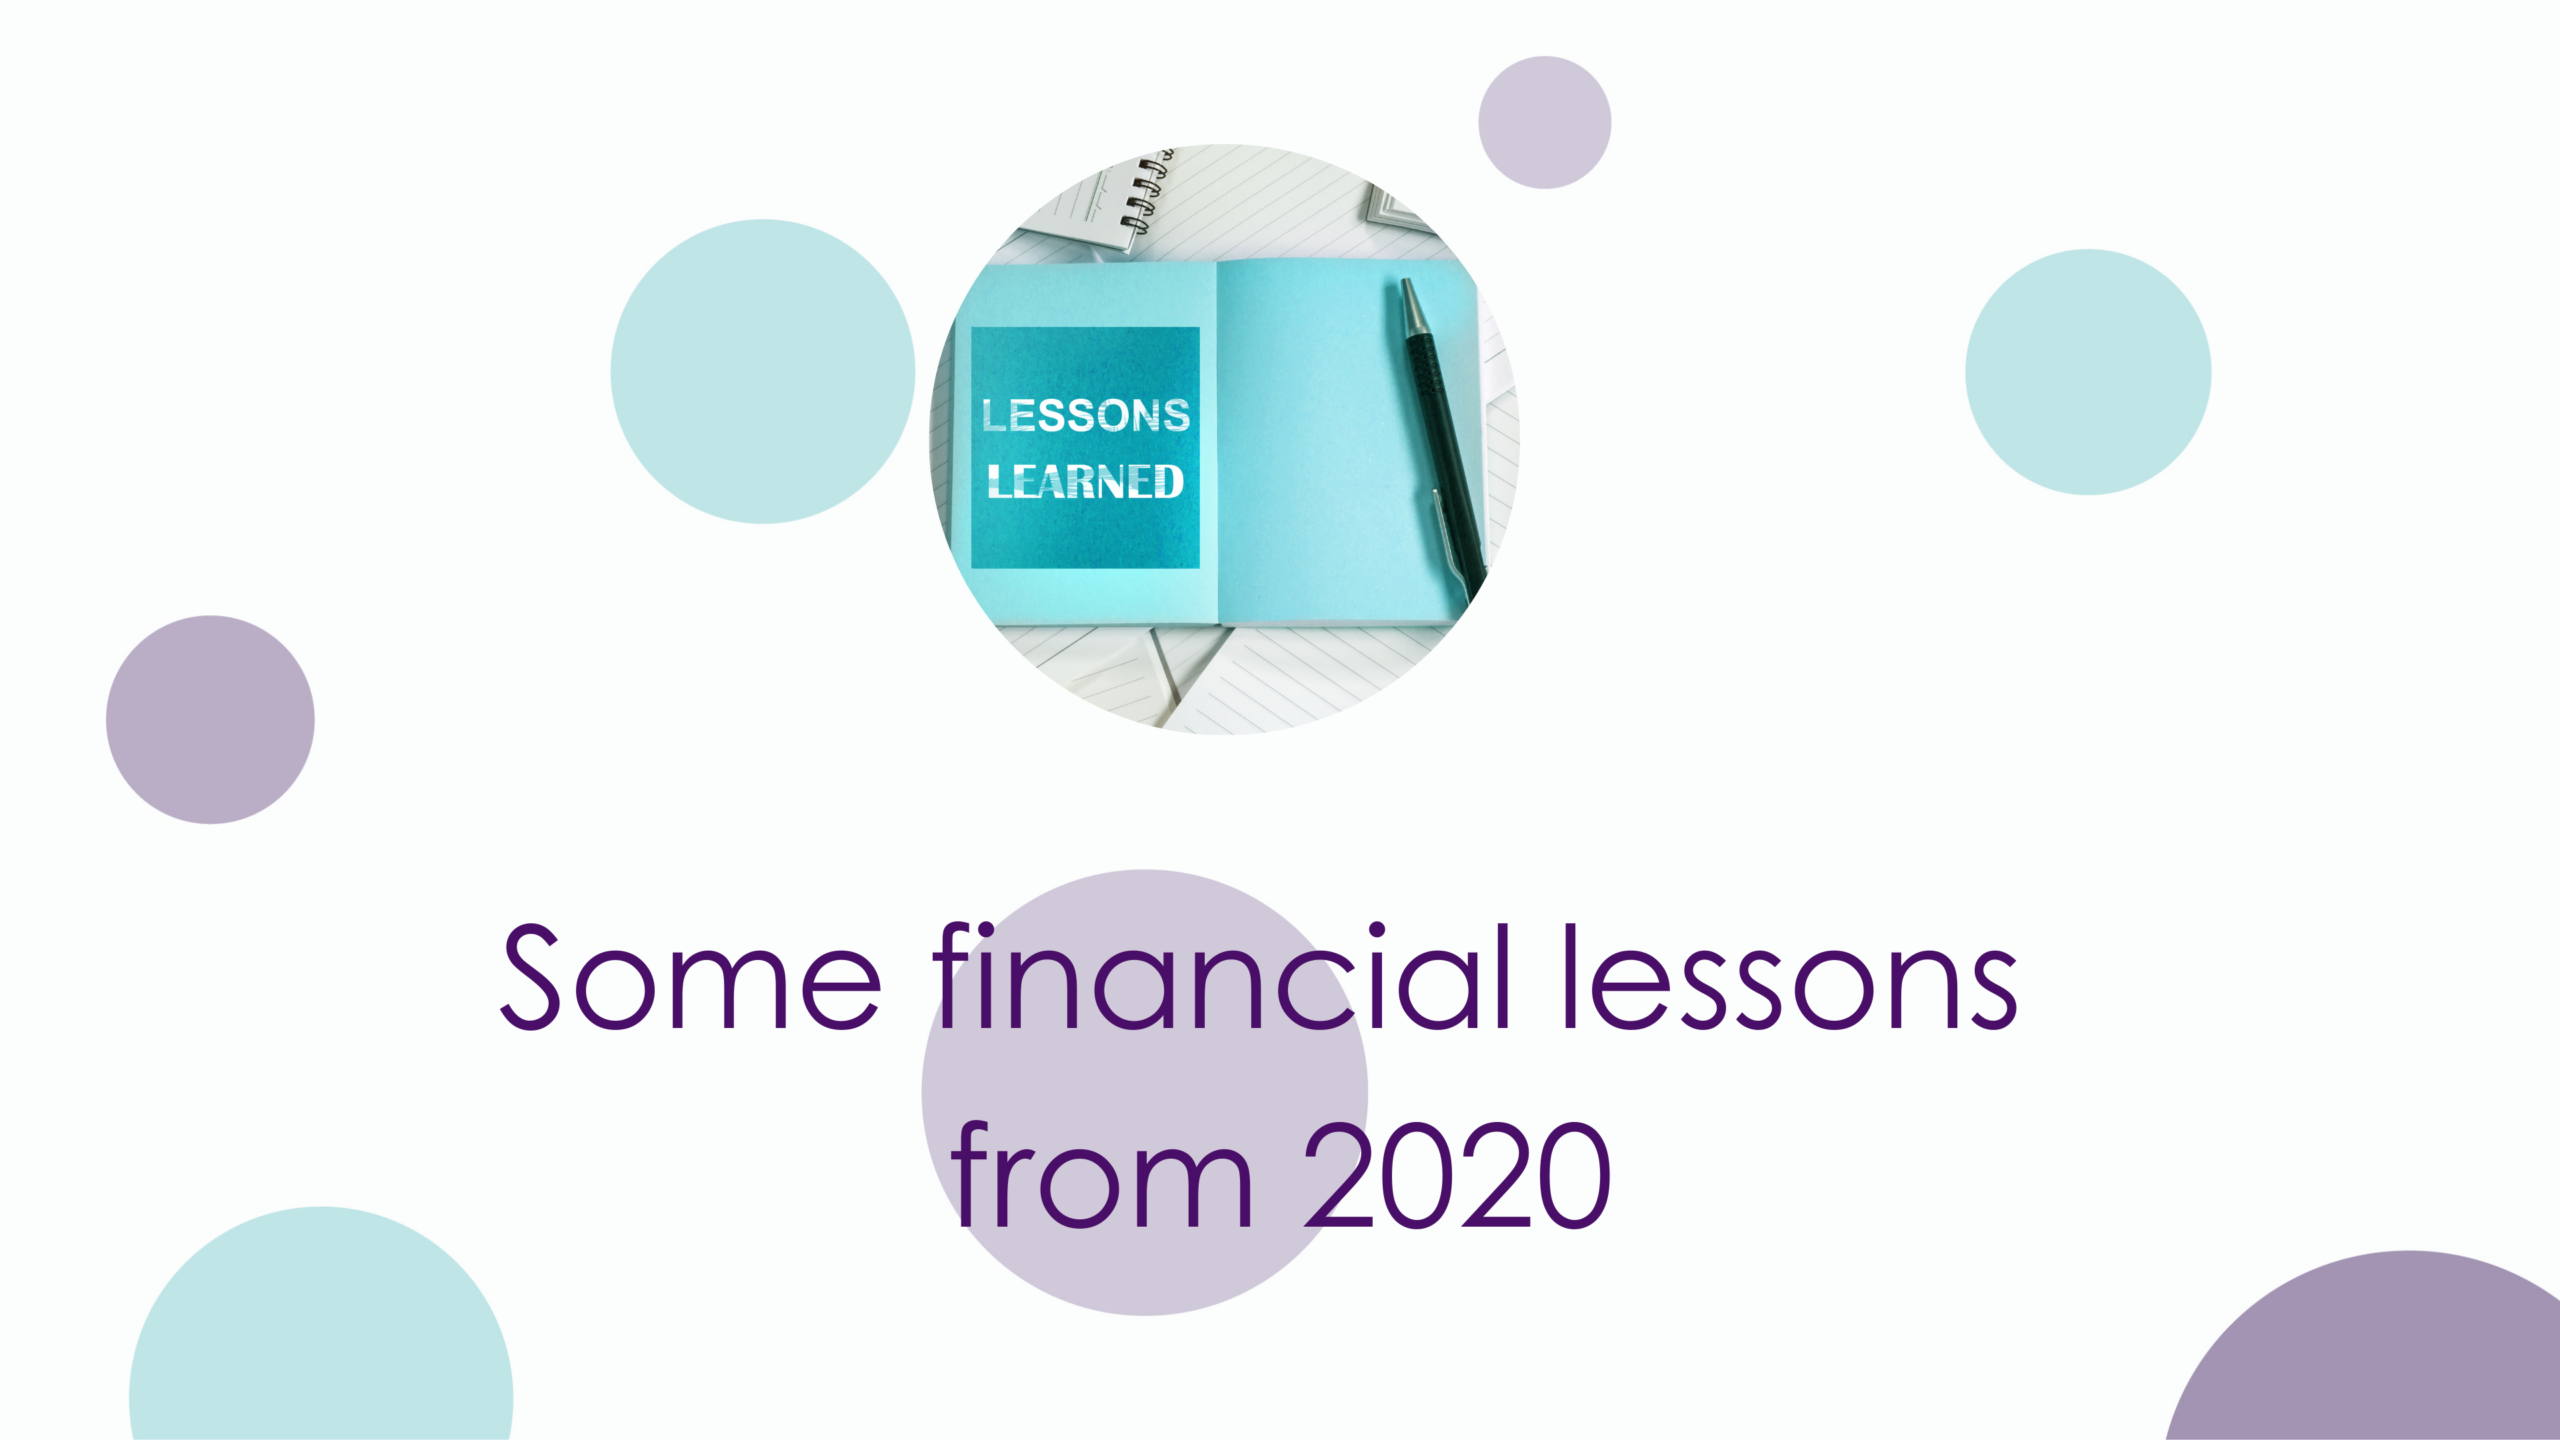 Some financial lessons from the last year